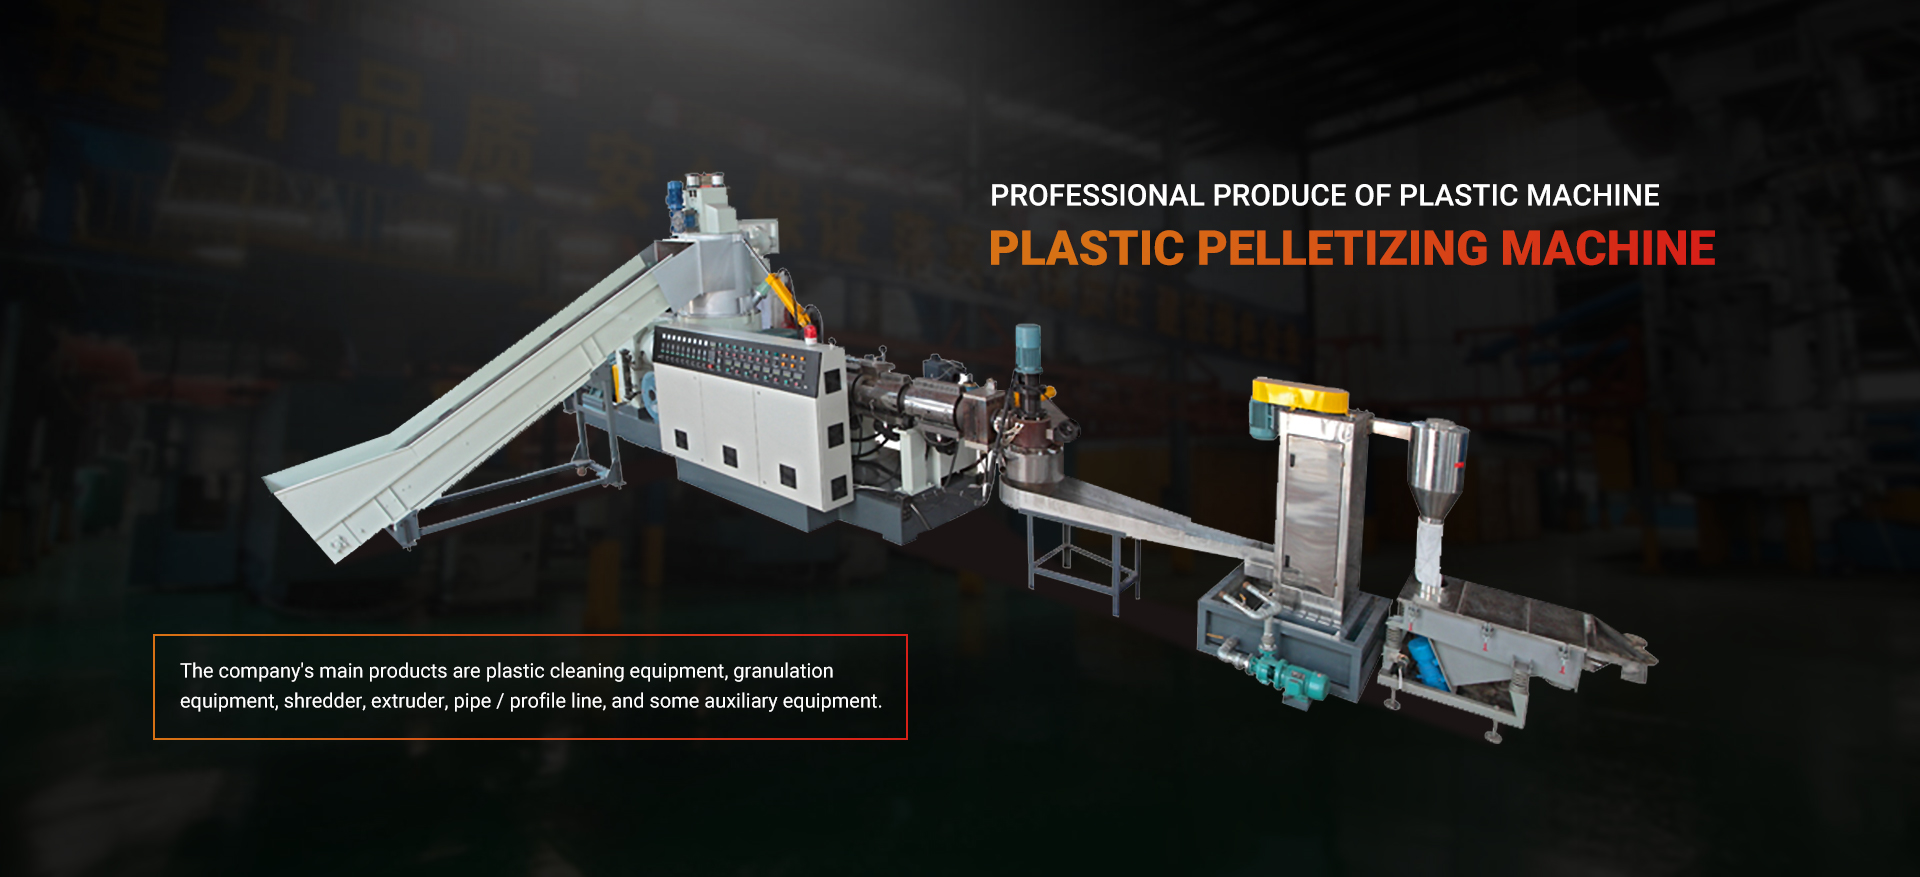 Single/double shaft shredder  professional produce of plastic machine